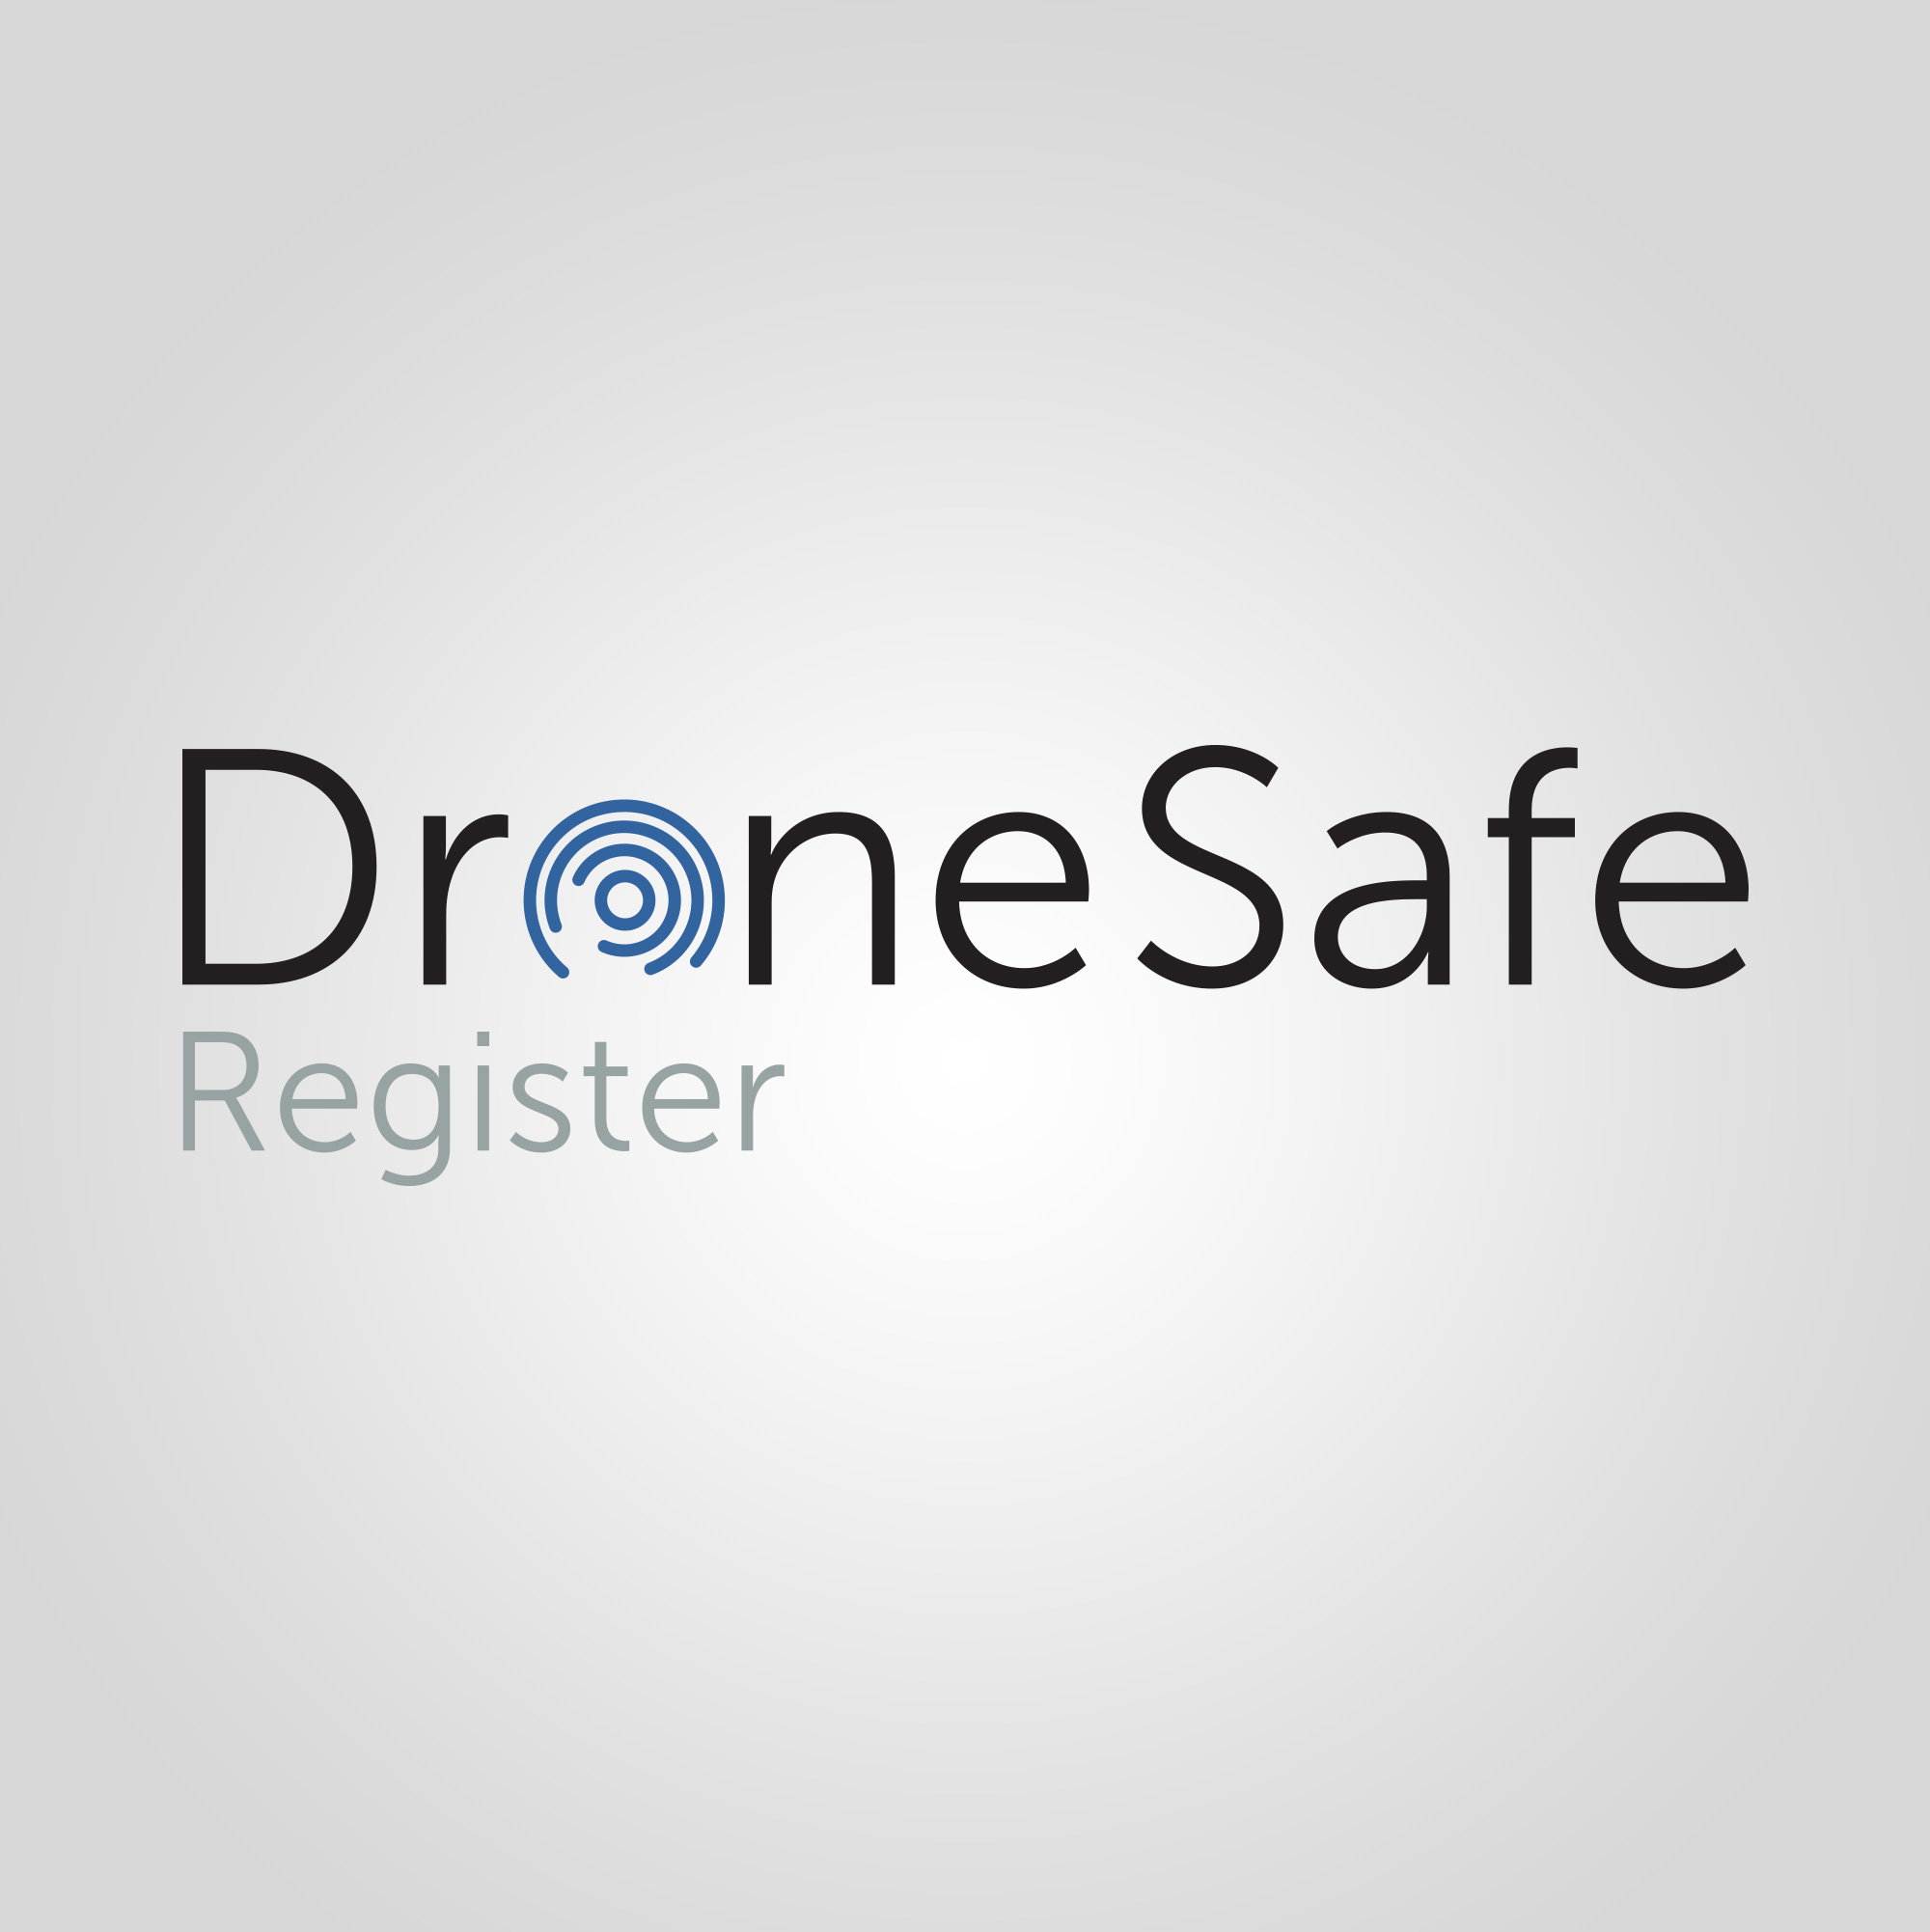 Drone Safe Register Logo Design